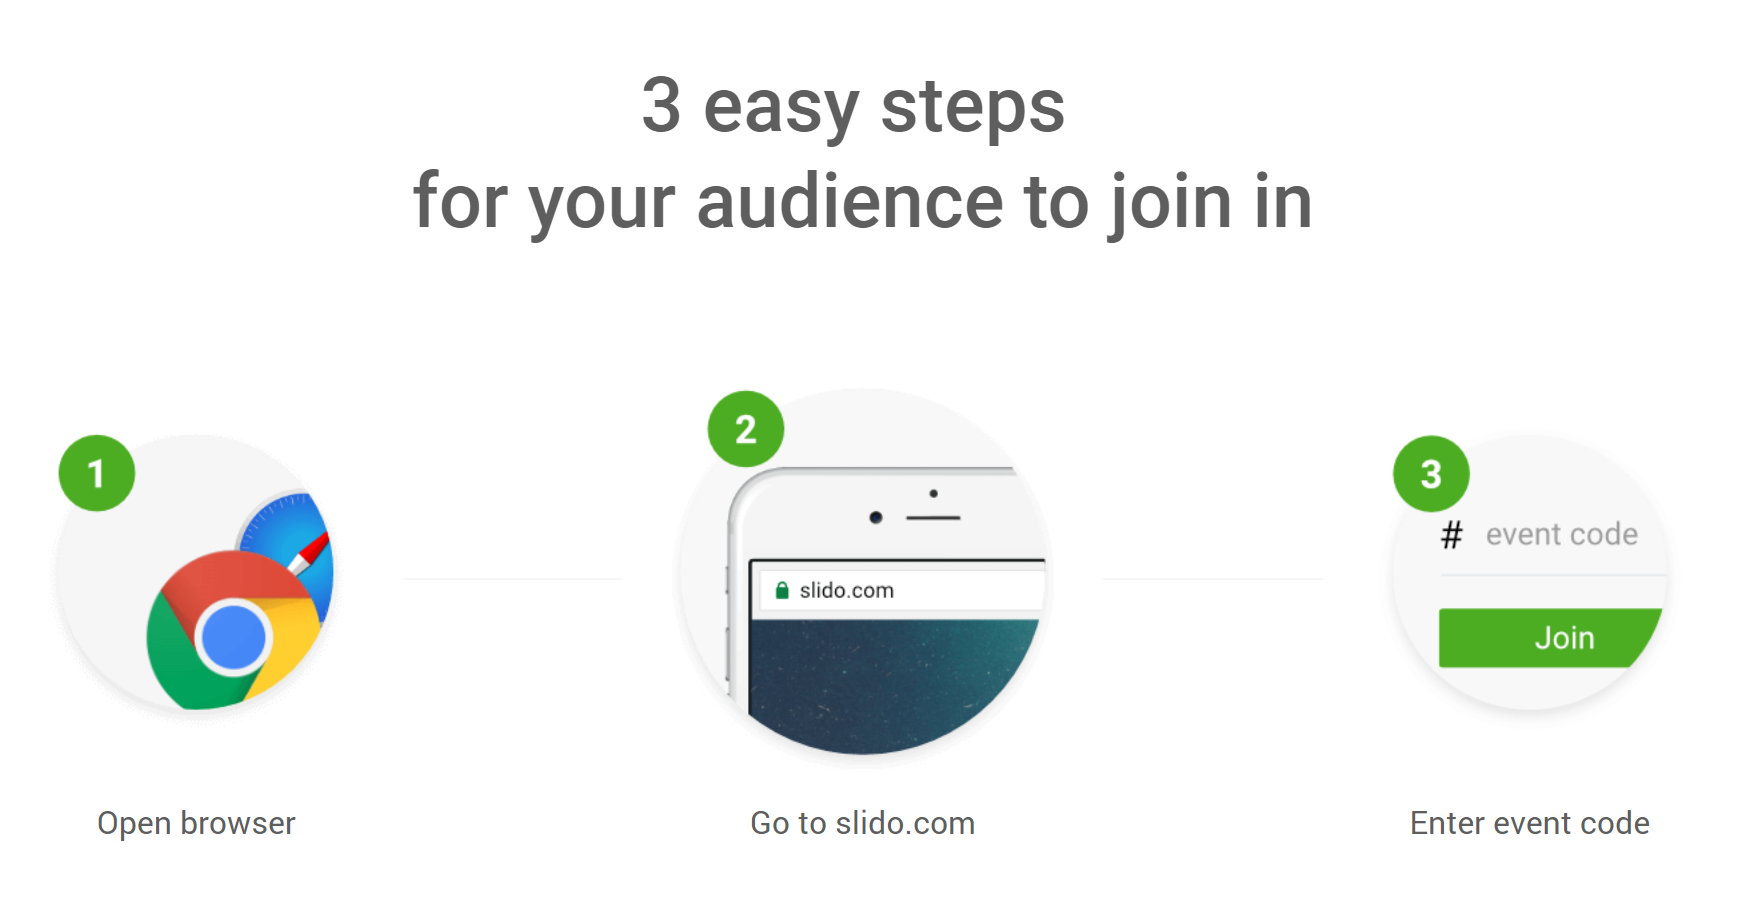 3 easy steps to use Slido in a presentation